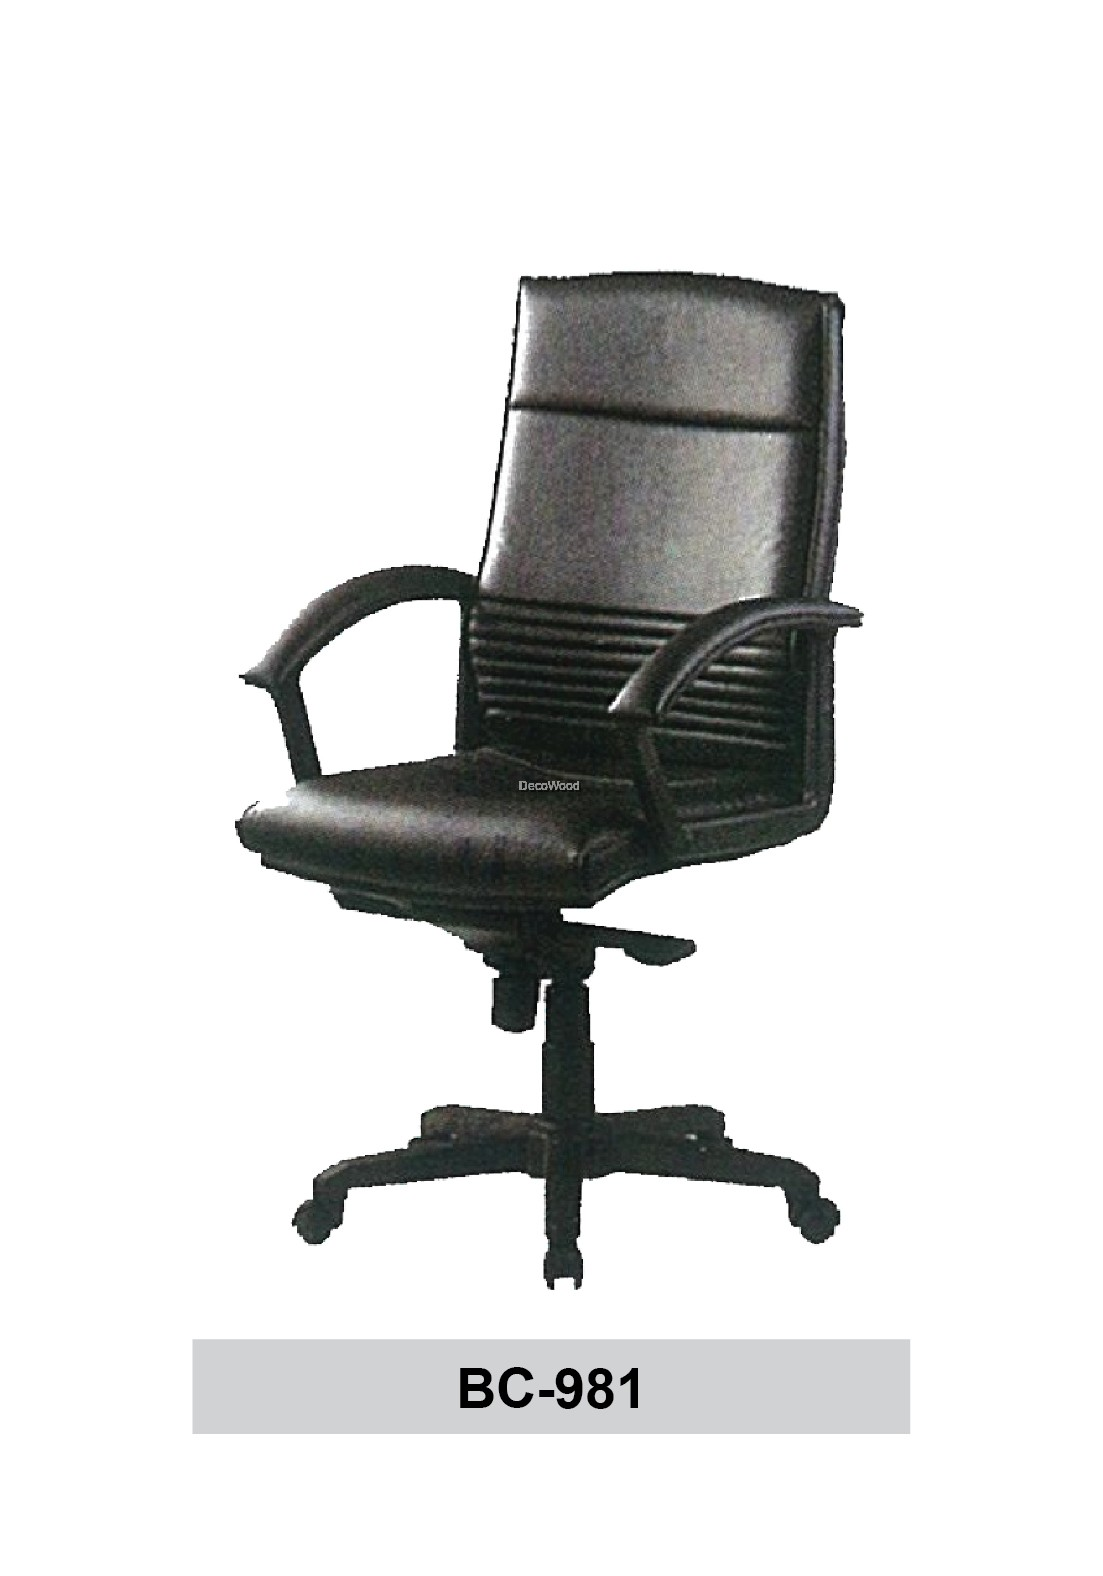 Magnificent Europa Basic Seating Leather Seating Office Chair Low Back Chair Executive Chair Director Chair W720Mm X D710Mm X H950Mm 1050Mm Creativecarmelina Interior Chair Design Creativecarmelinacom